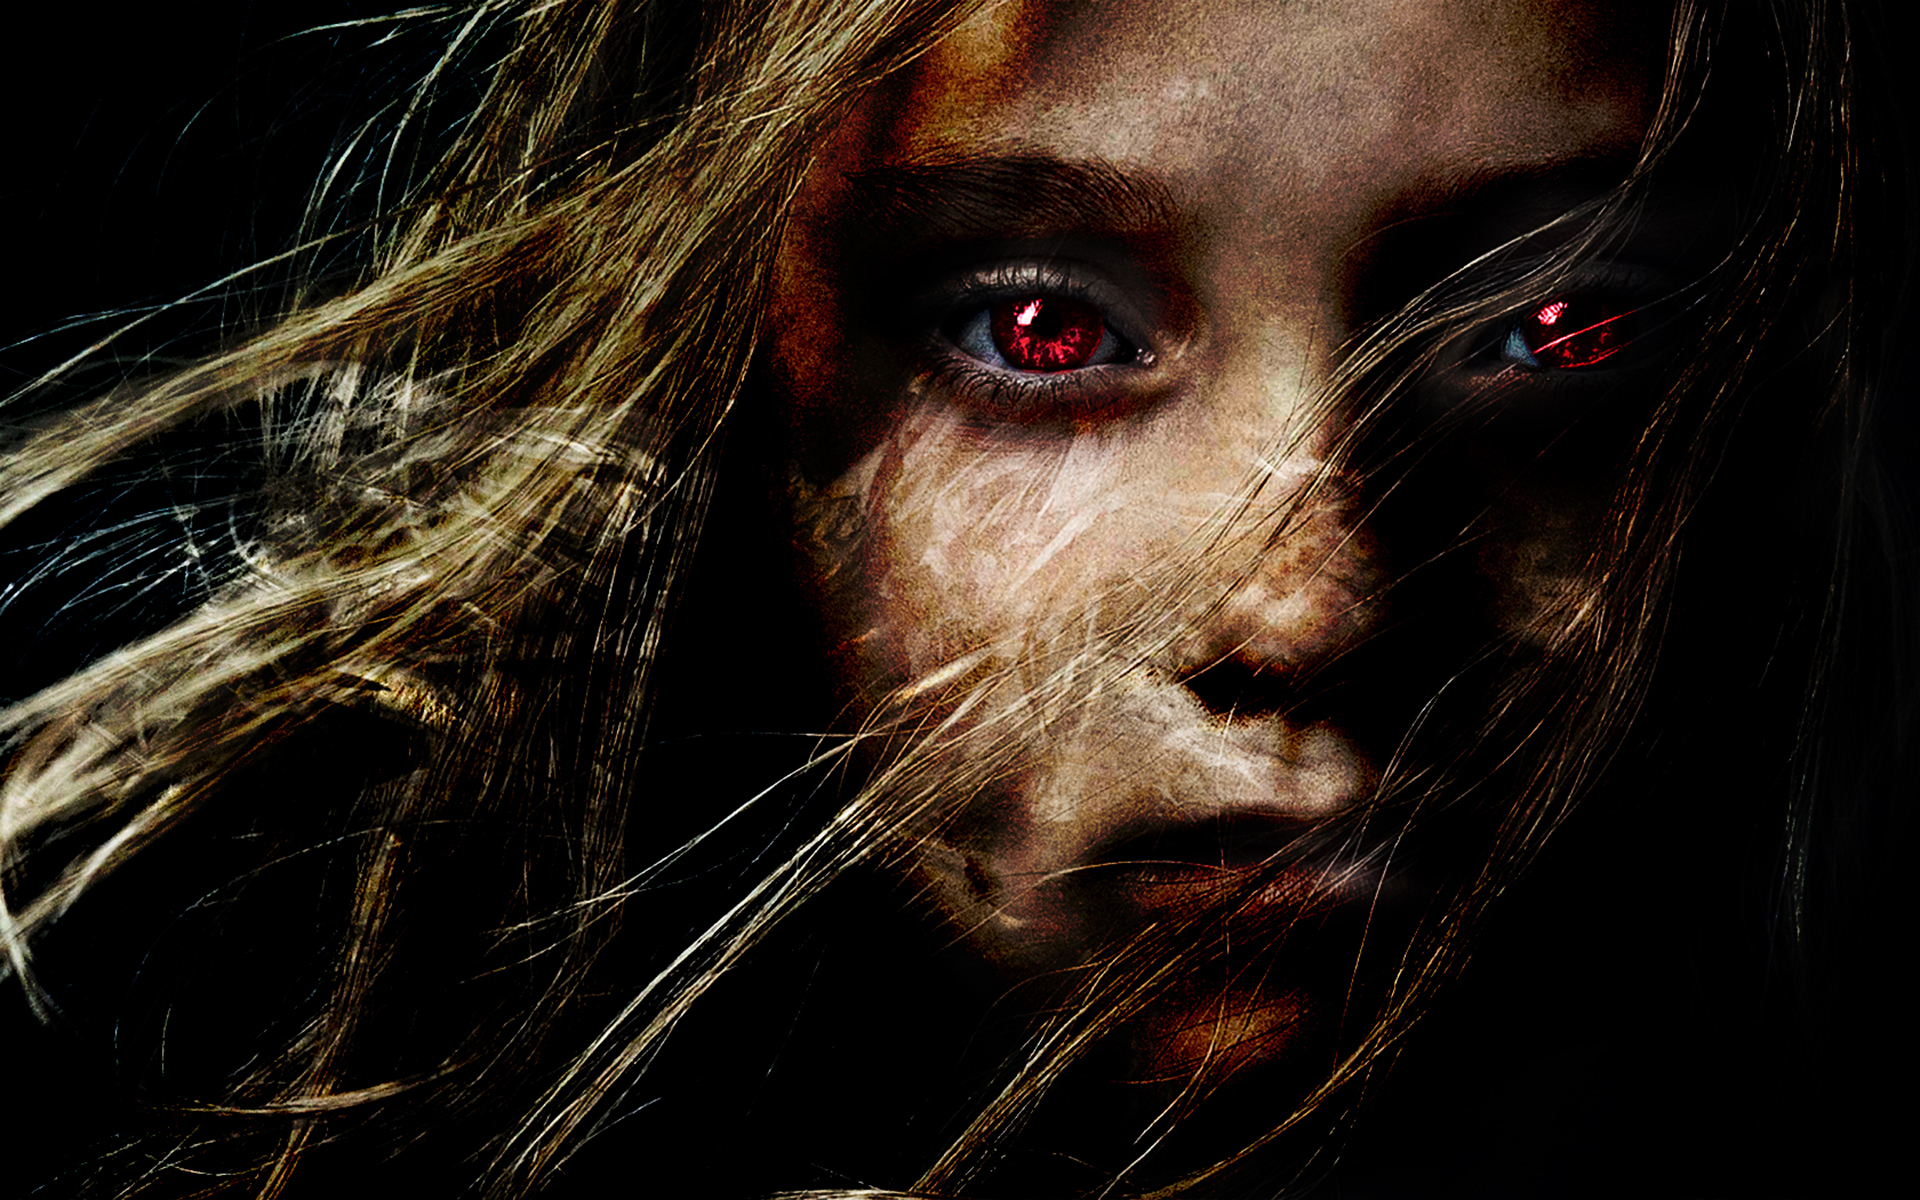 dark gothic horror scary creepy spooky demon evil face blonde women 1920x1200